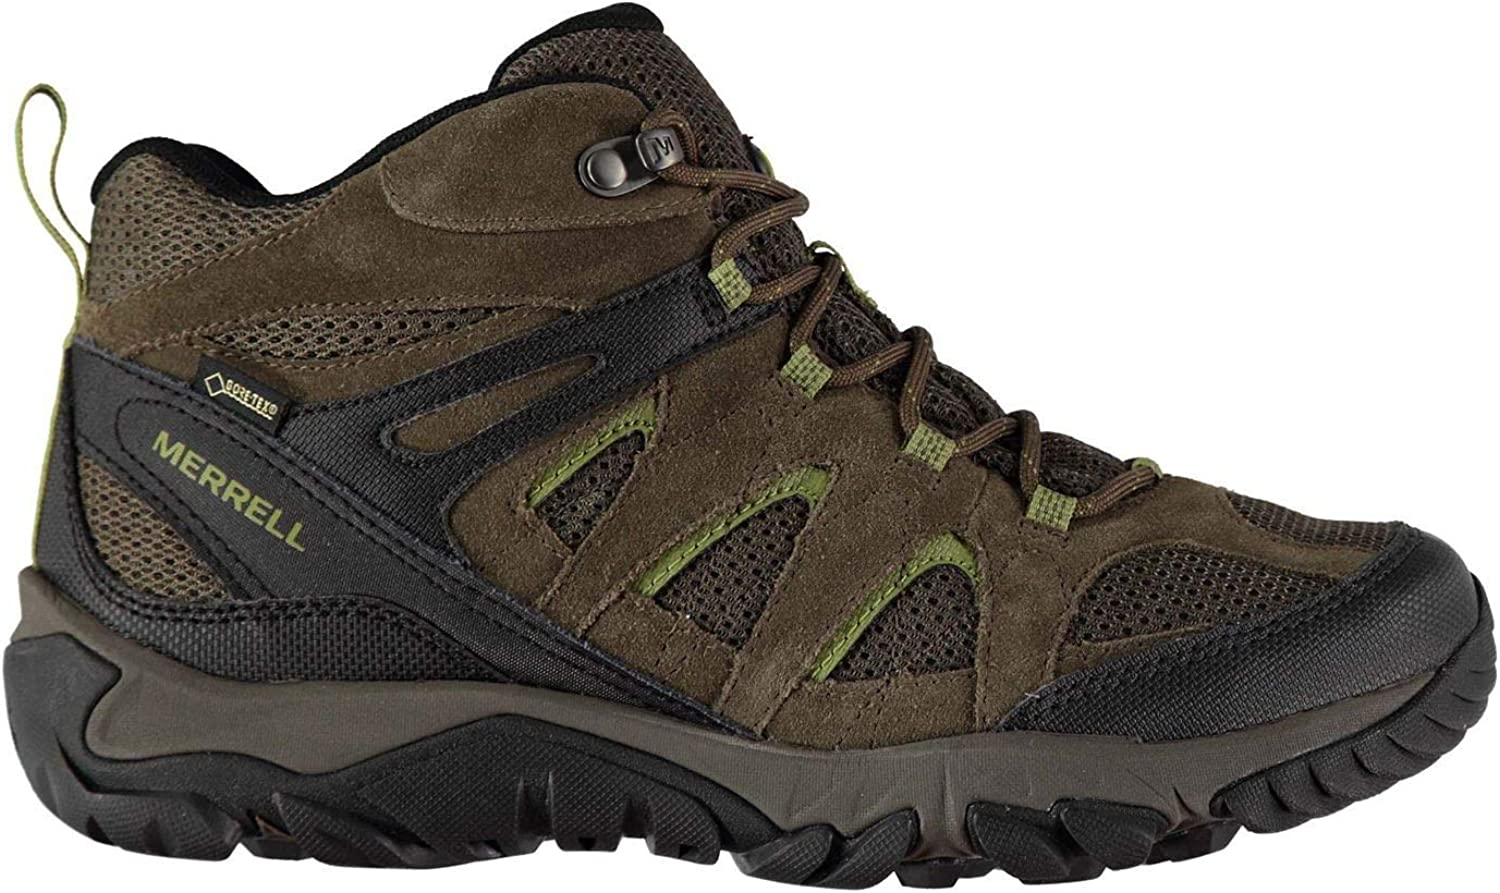 Official Merrell Outmost Ventilator GoreTex Waterproof Walking Boots Mens Hiking shoes